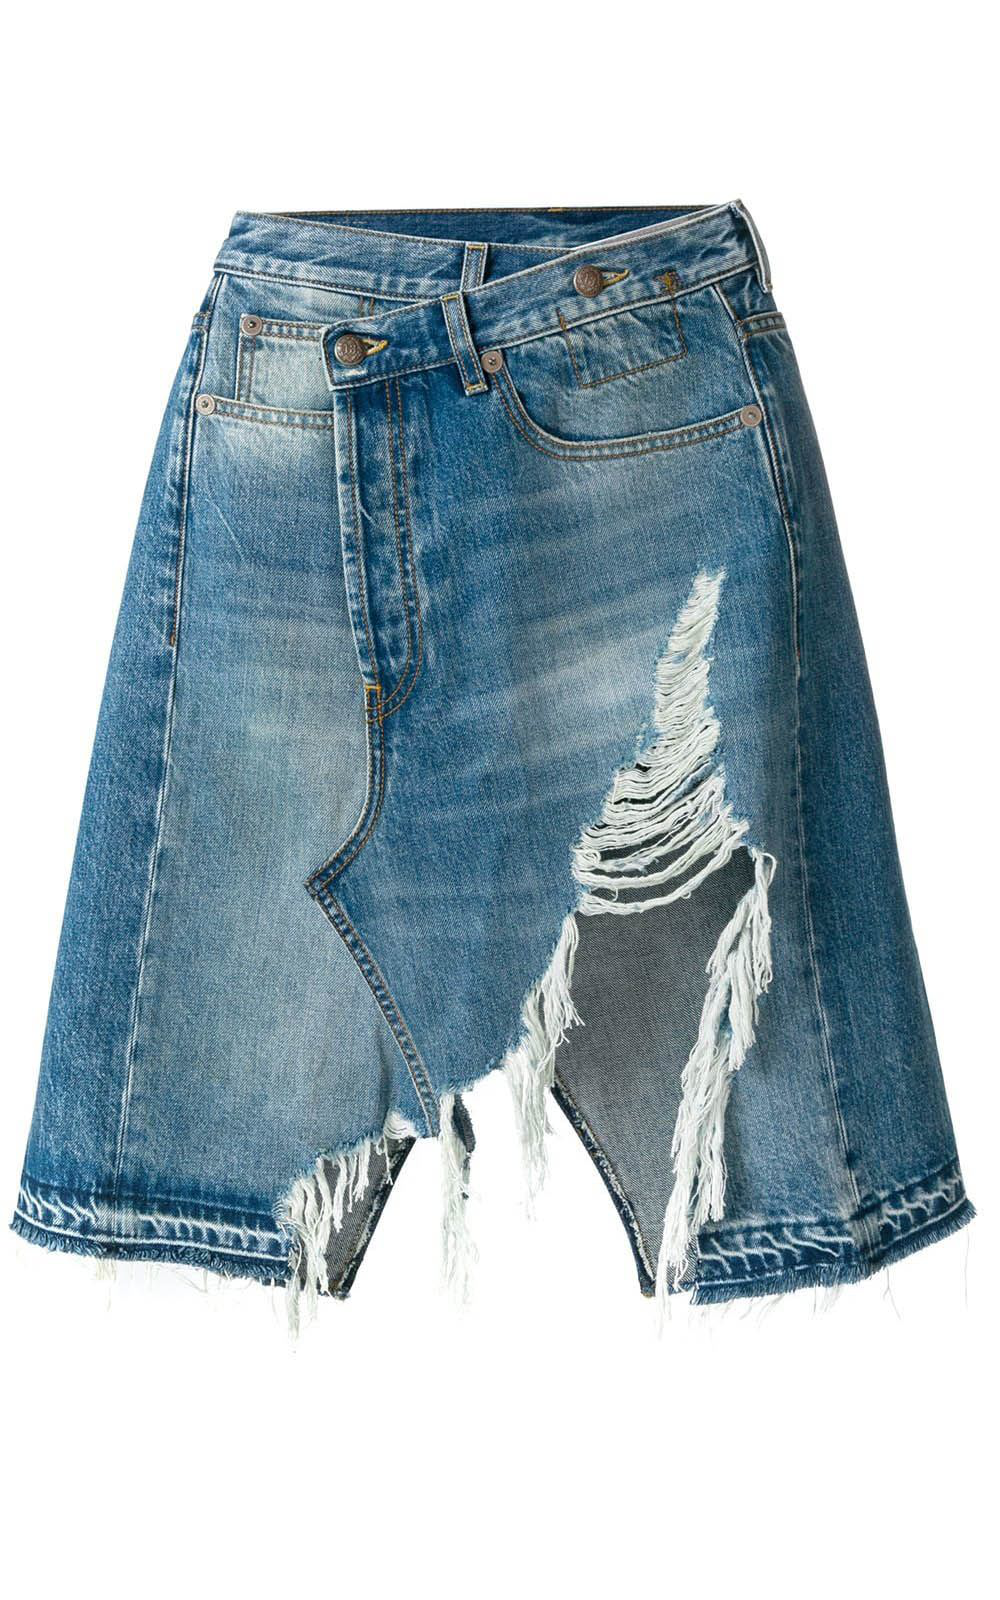 e7d3a8bb1c29 Relaxed And Destroyed Light Wash Distressed Denim Mini Skirt